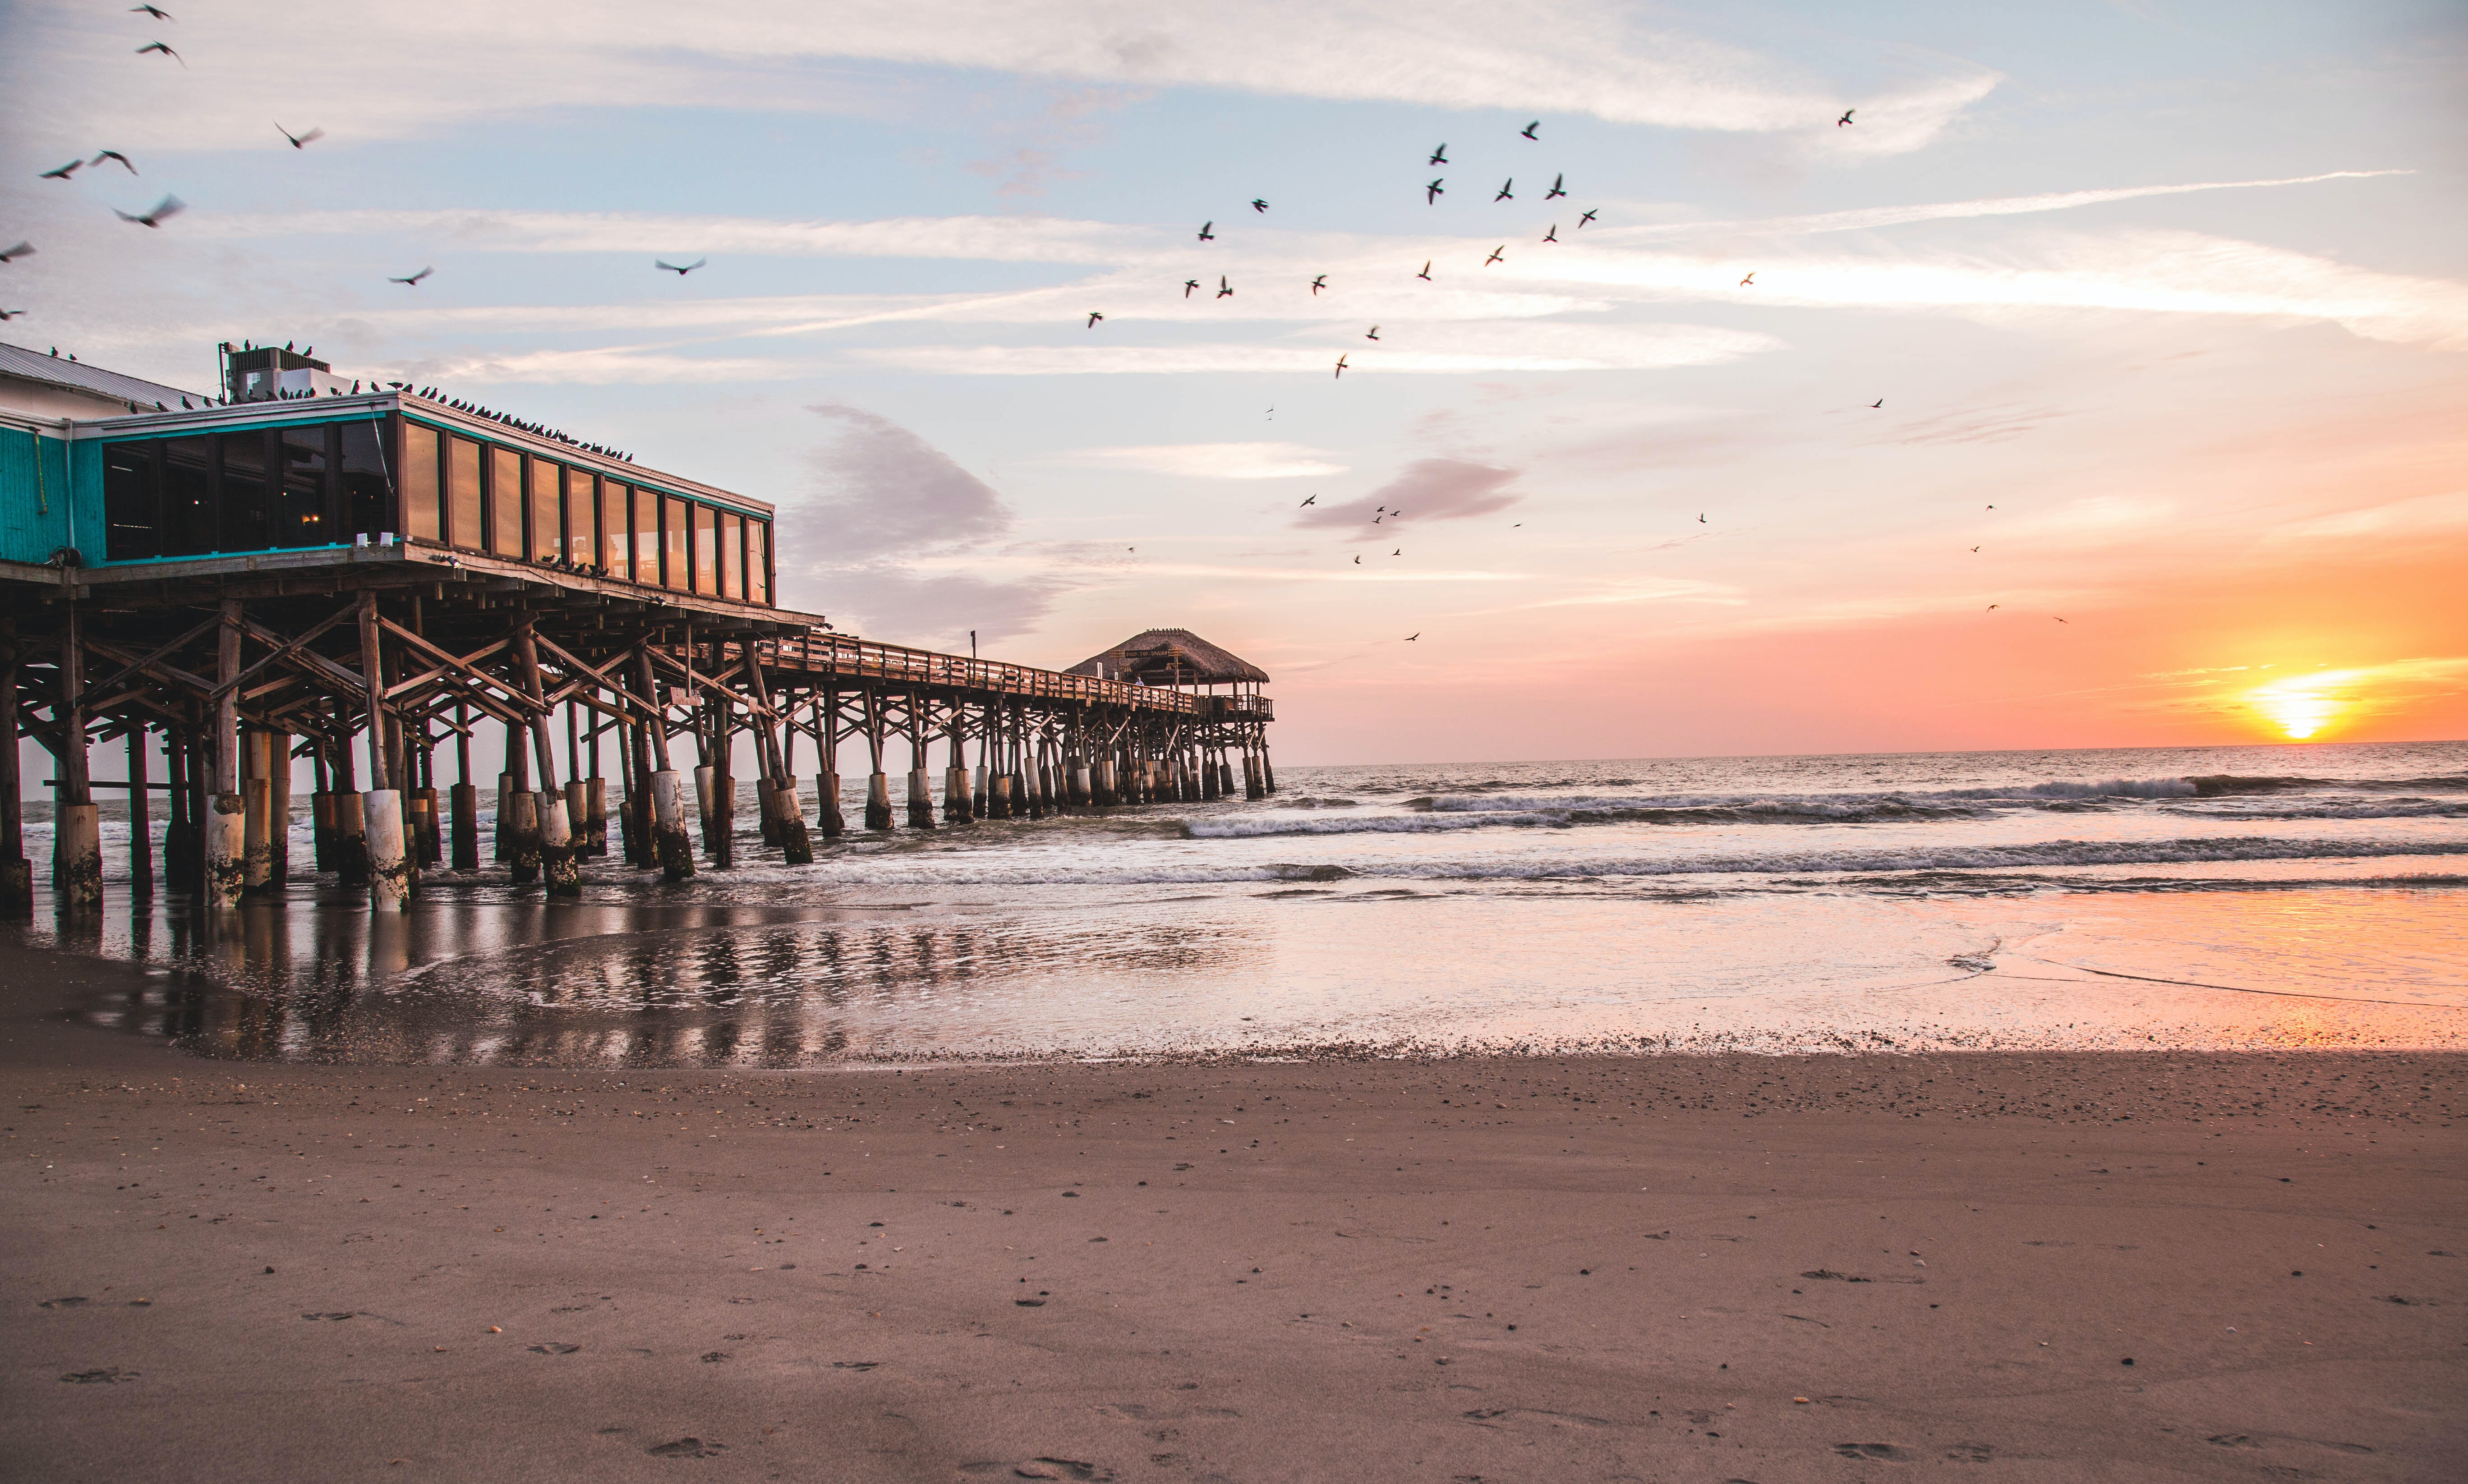 birds flying over brown wooden sea dock during sunset